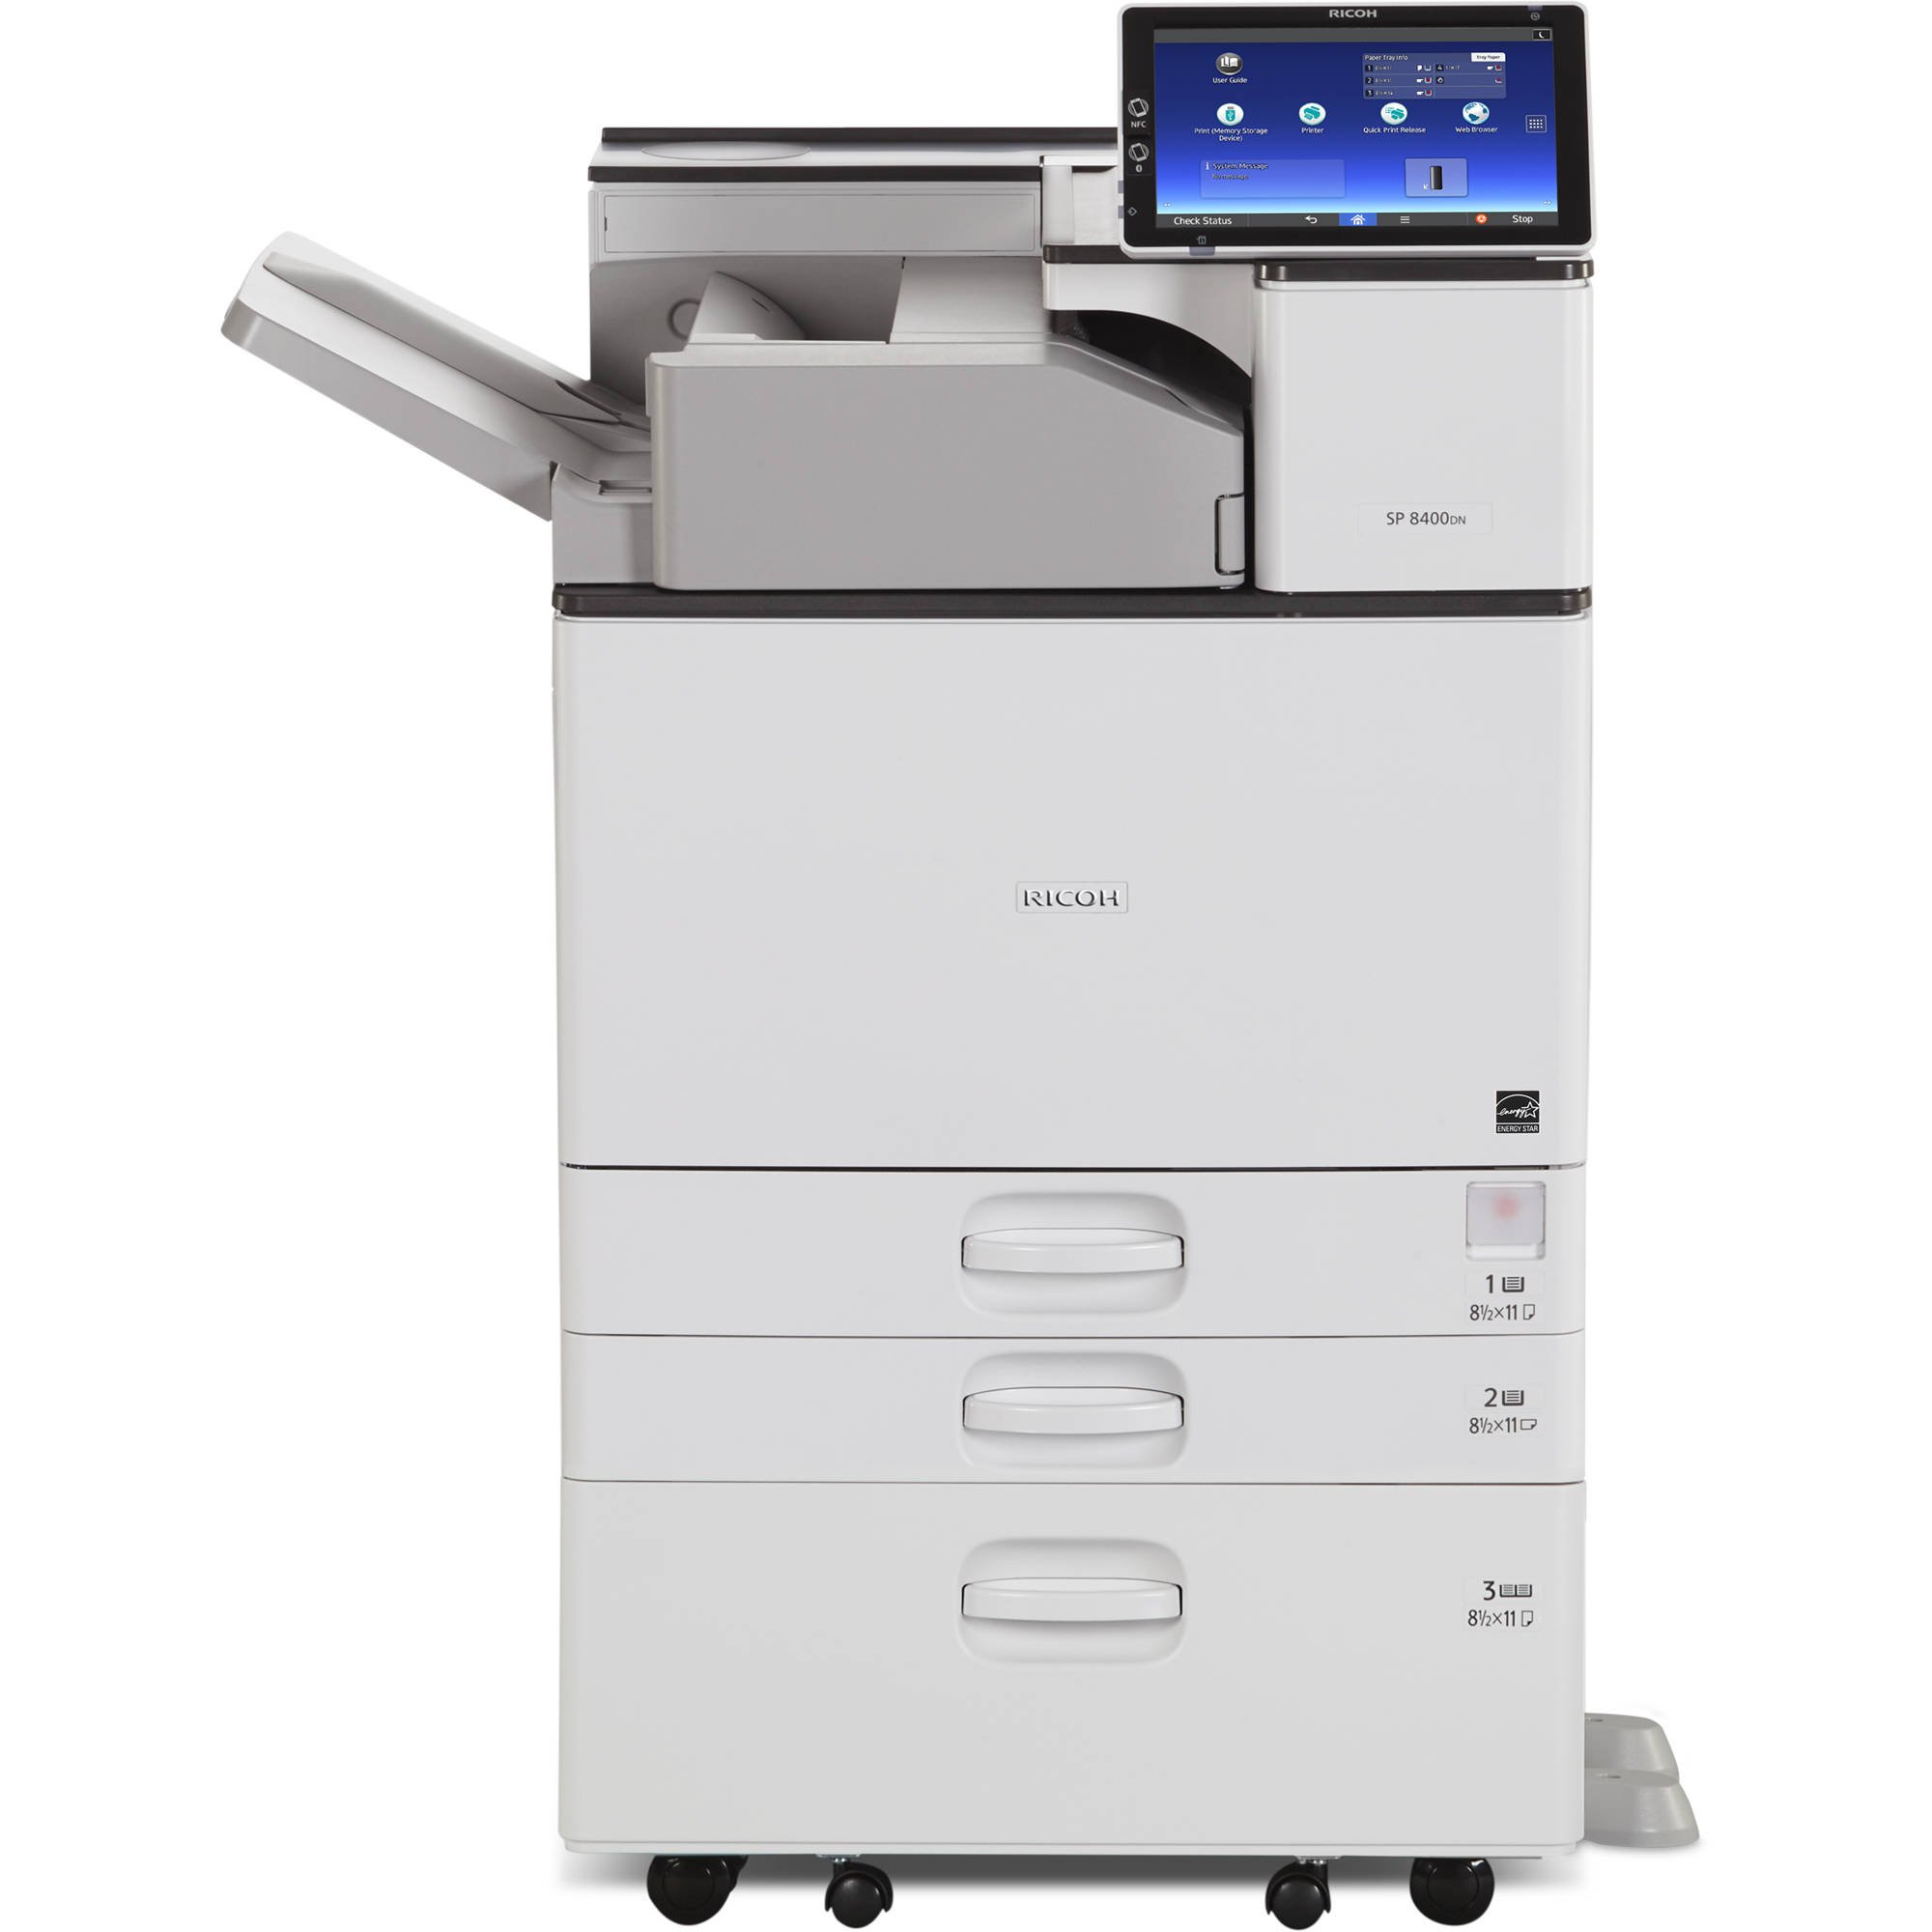 Ricoh SP 8400DN Monochrome Laser Printer